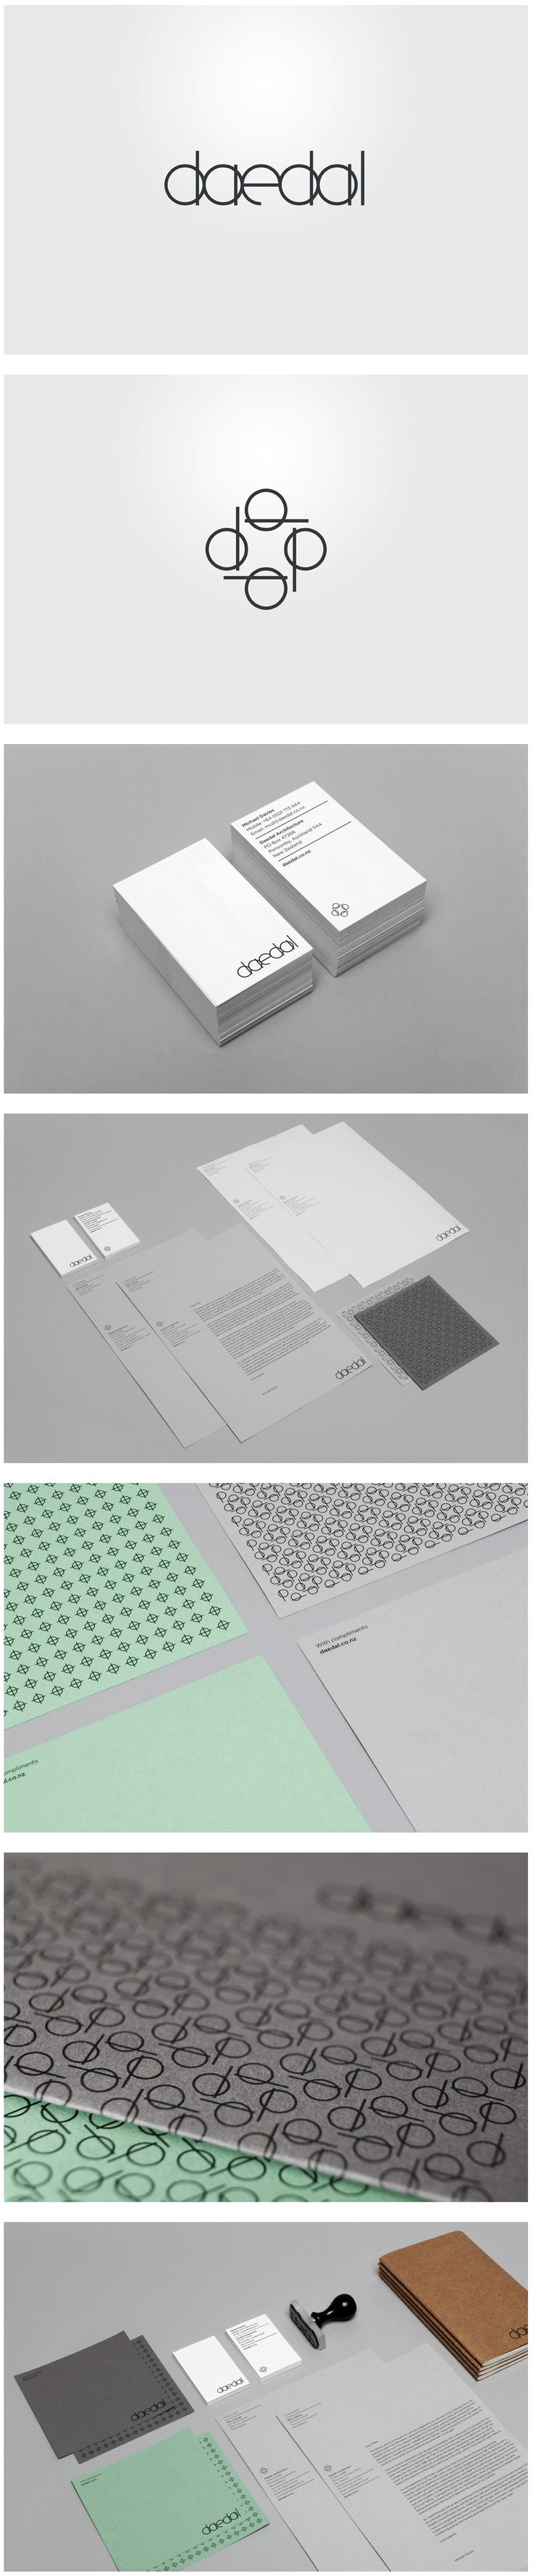 Daedal Architecture (updated) - mike collinge - design / identity / art direction